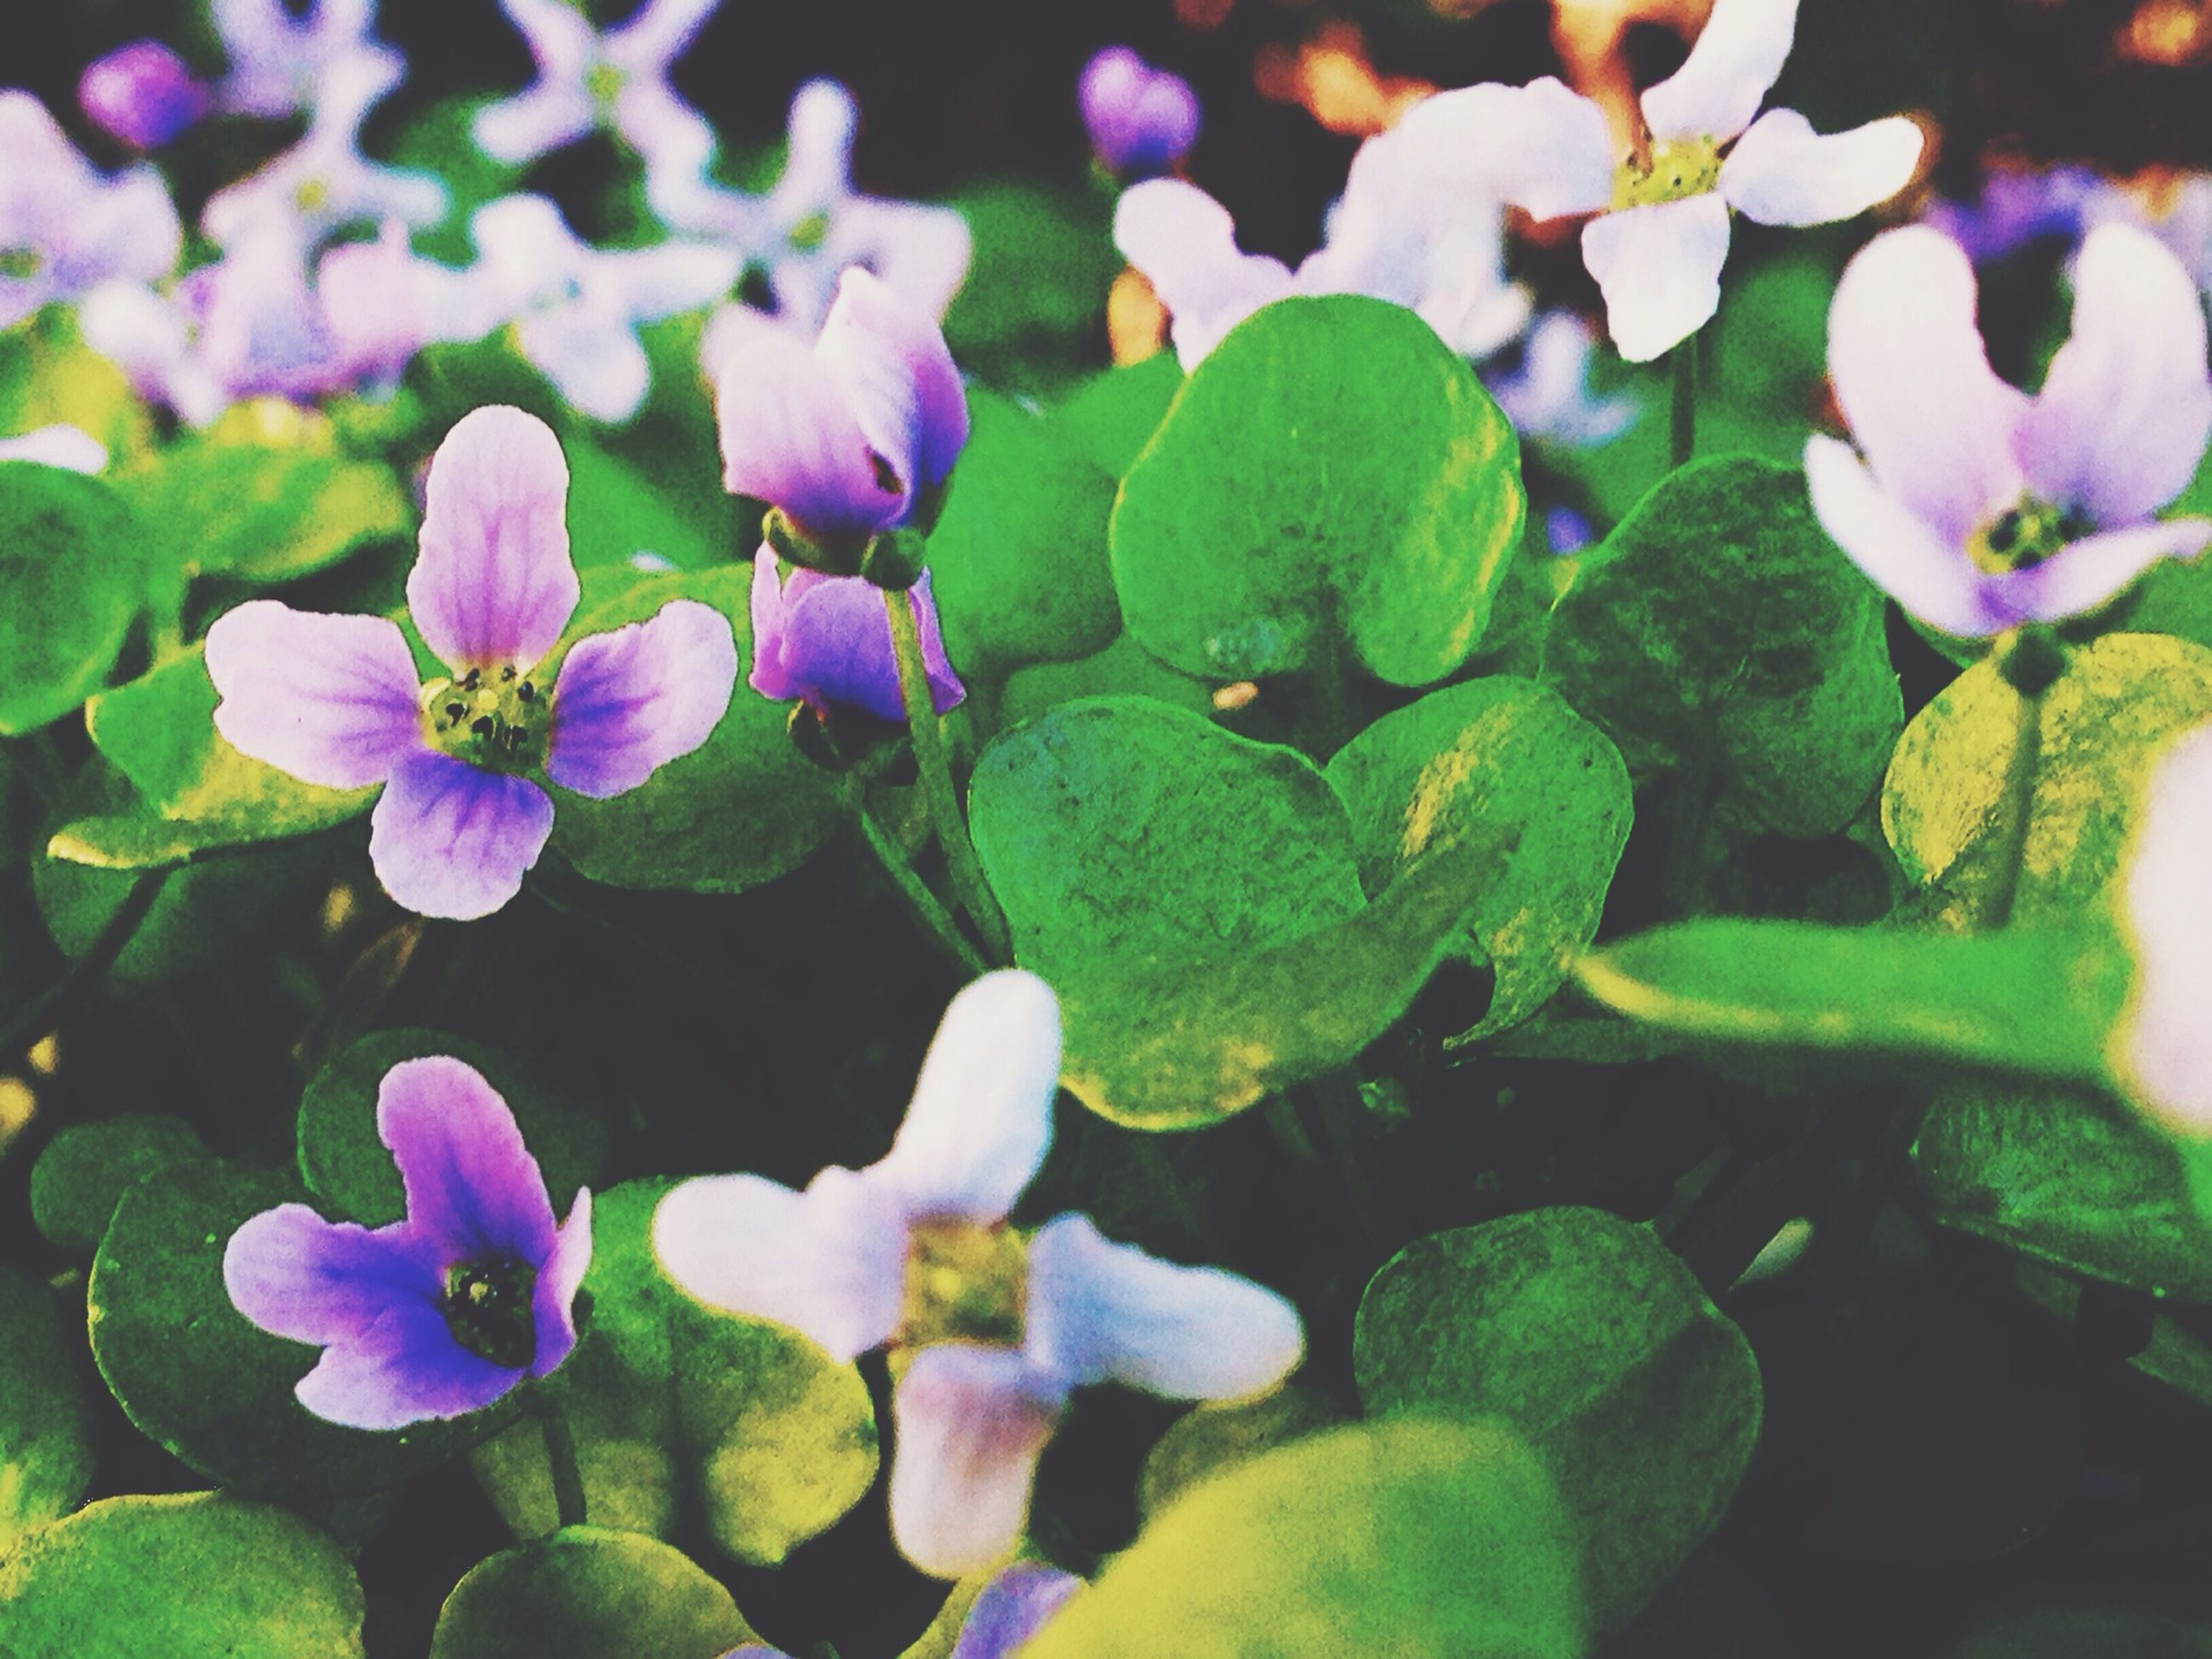 flower, petal, freshness, fragility, growth, purple, flower head, beauty in nature, plant, blooming, leaf, nature, close-up, focus on foreground, in bloom, park - man made space, day, outdoors, high angle view, no people